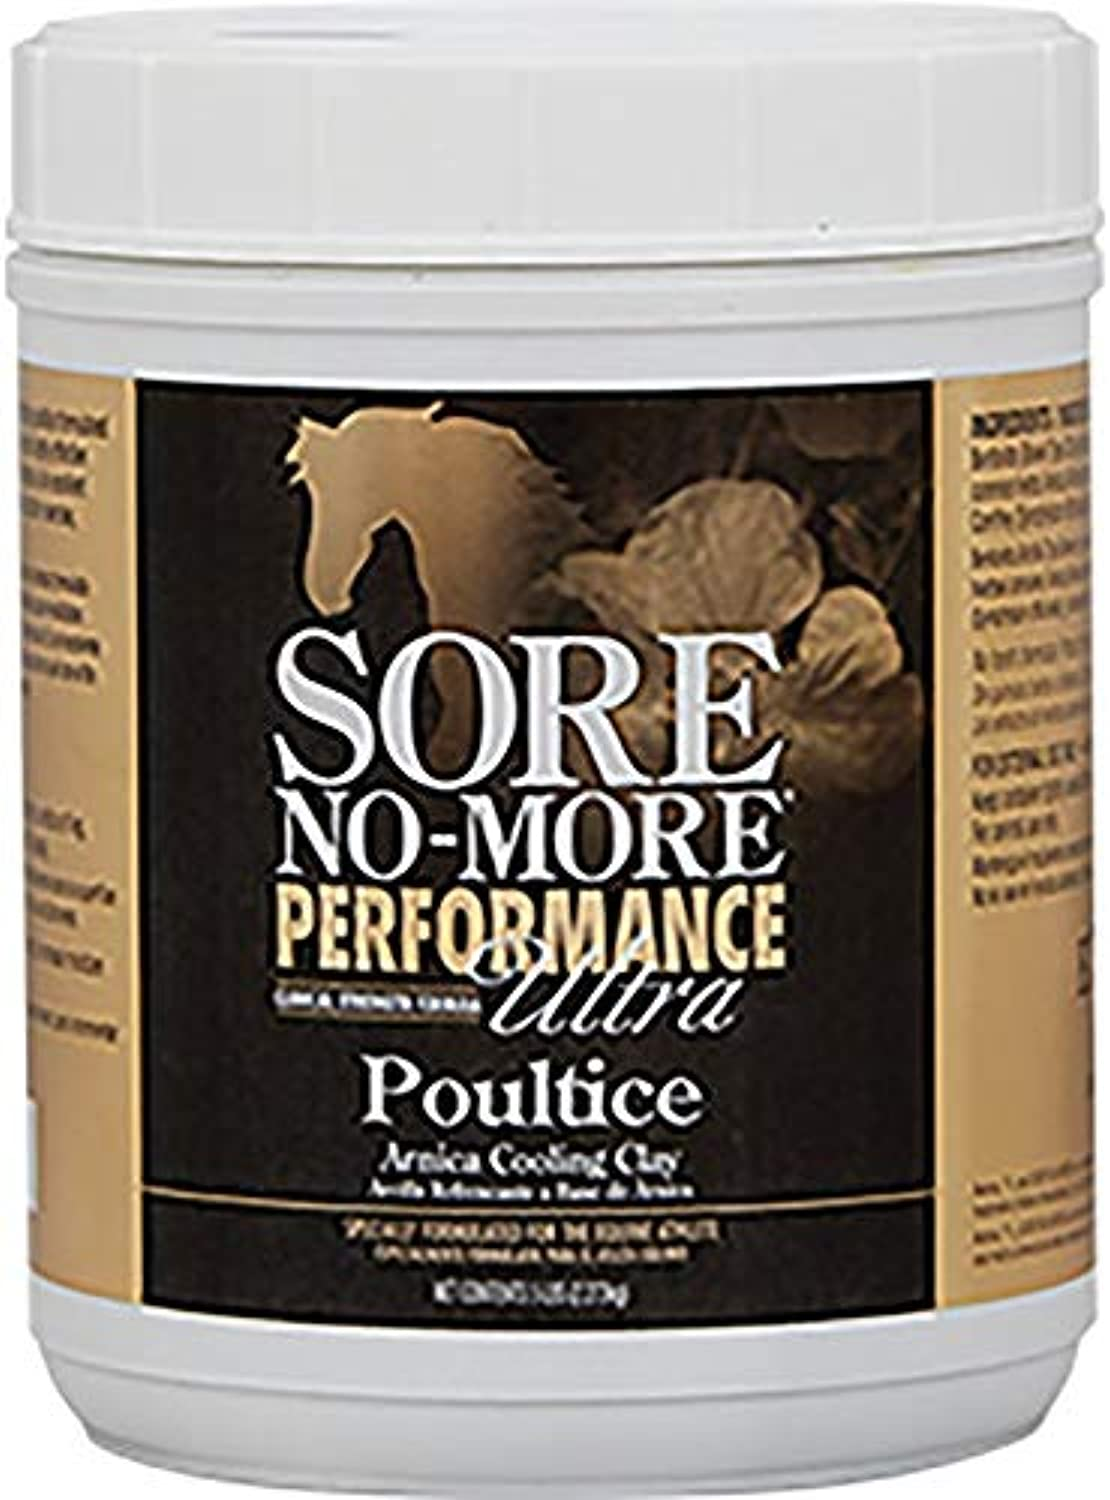 Equilite Sore No More Performance Ultra Poultice